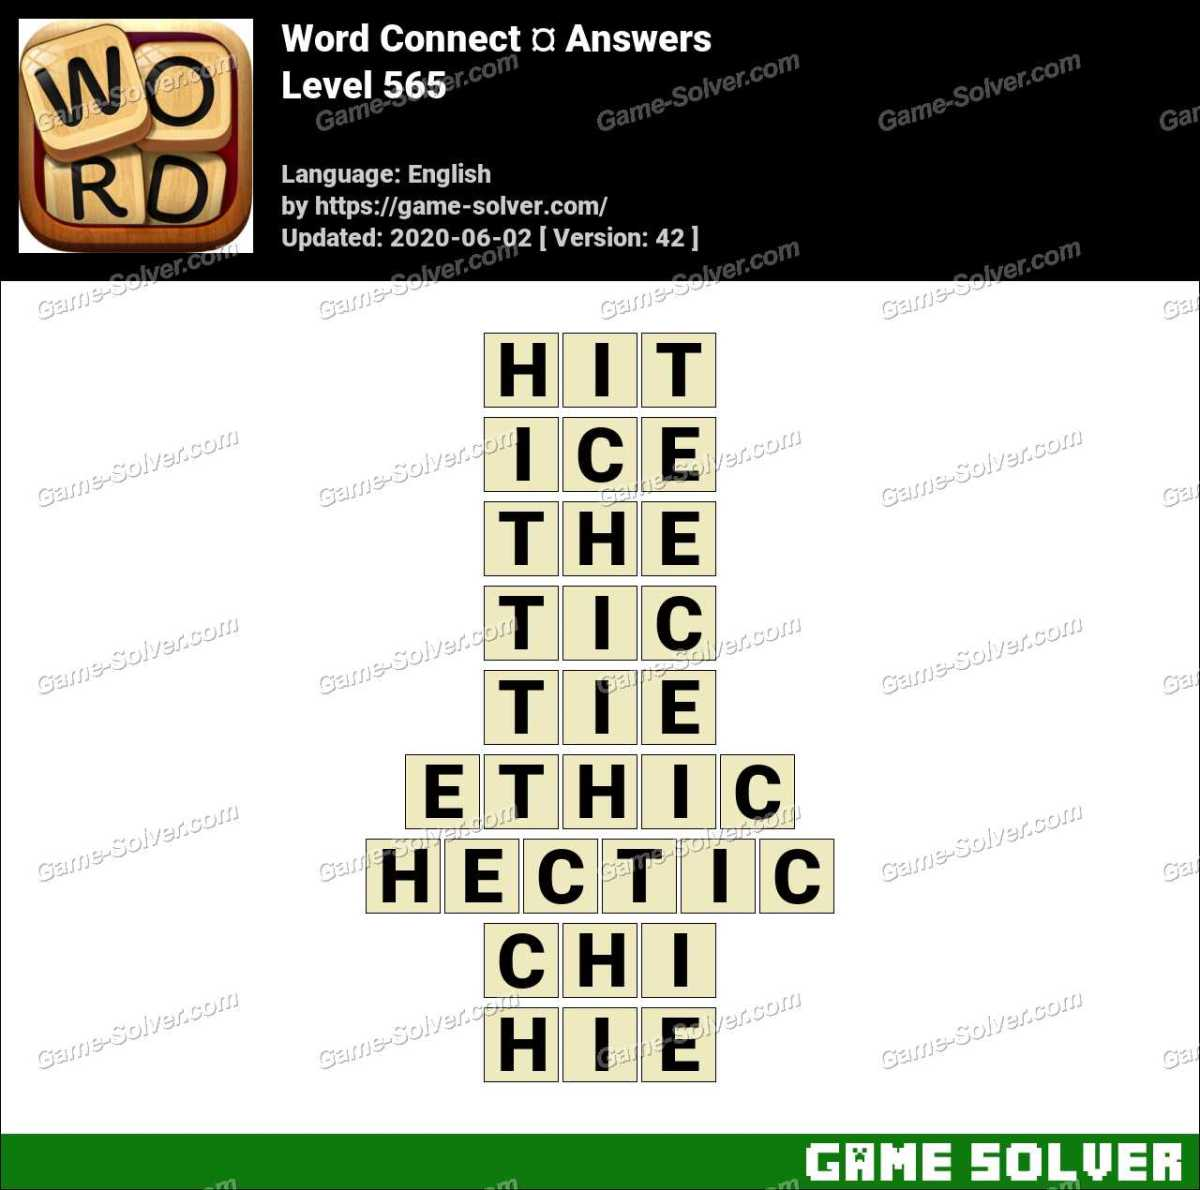 Word Connect Level 565 Answers